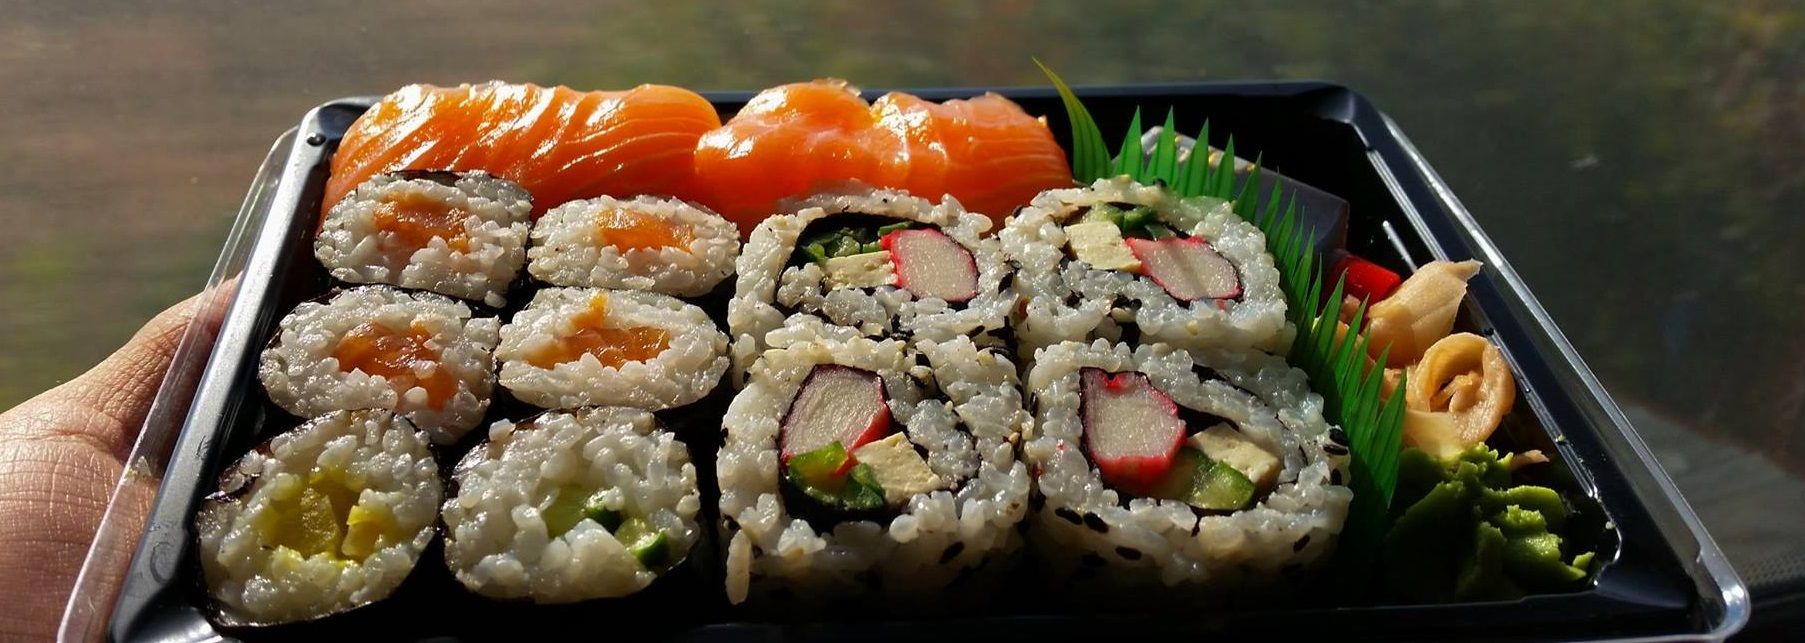 regiojet-prague-ostrava-business-class-sushi.jpg